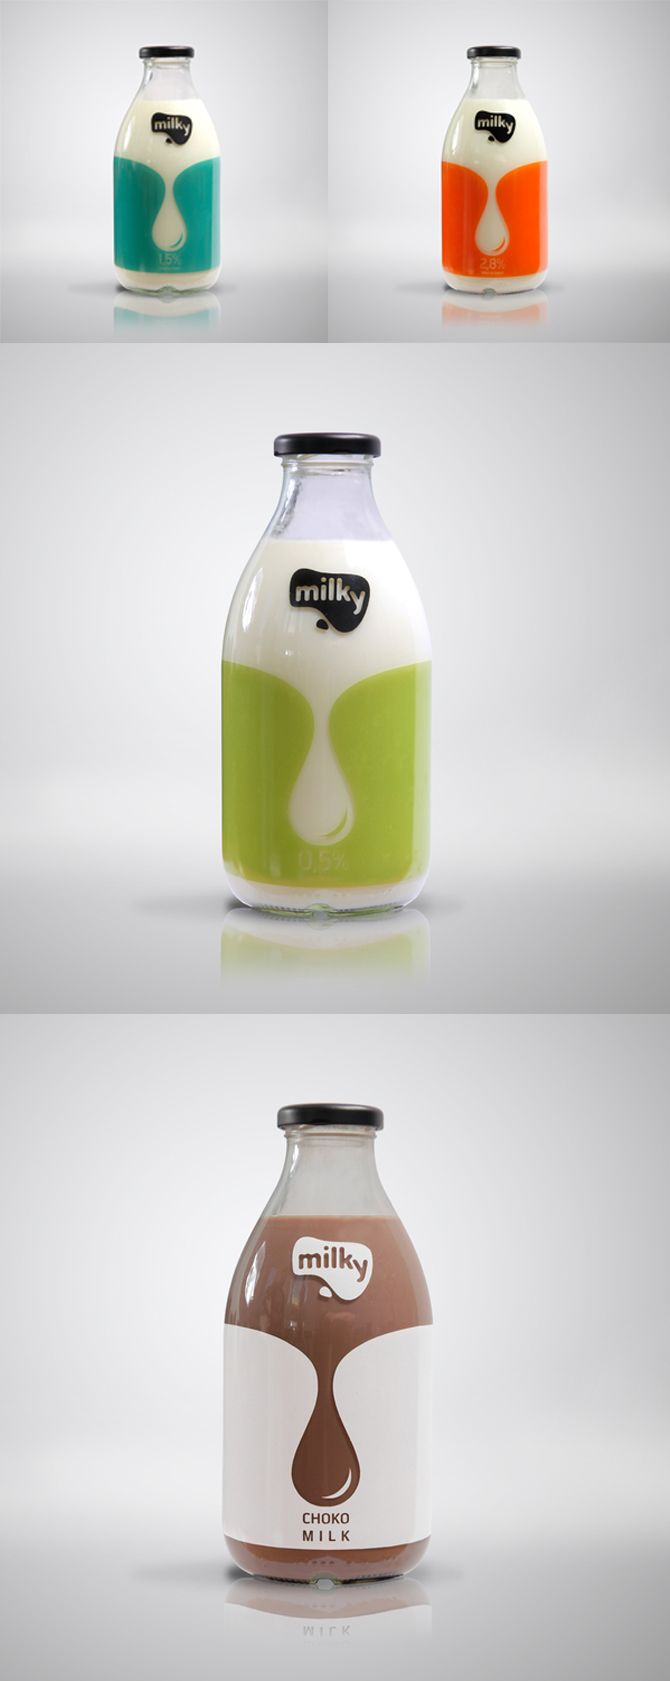 Milk Packaging Designs For Inspiration - We Design Packaging